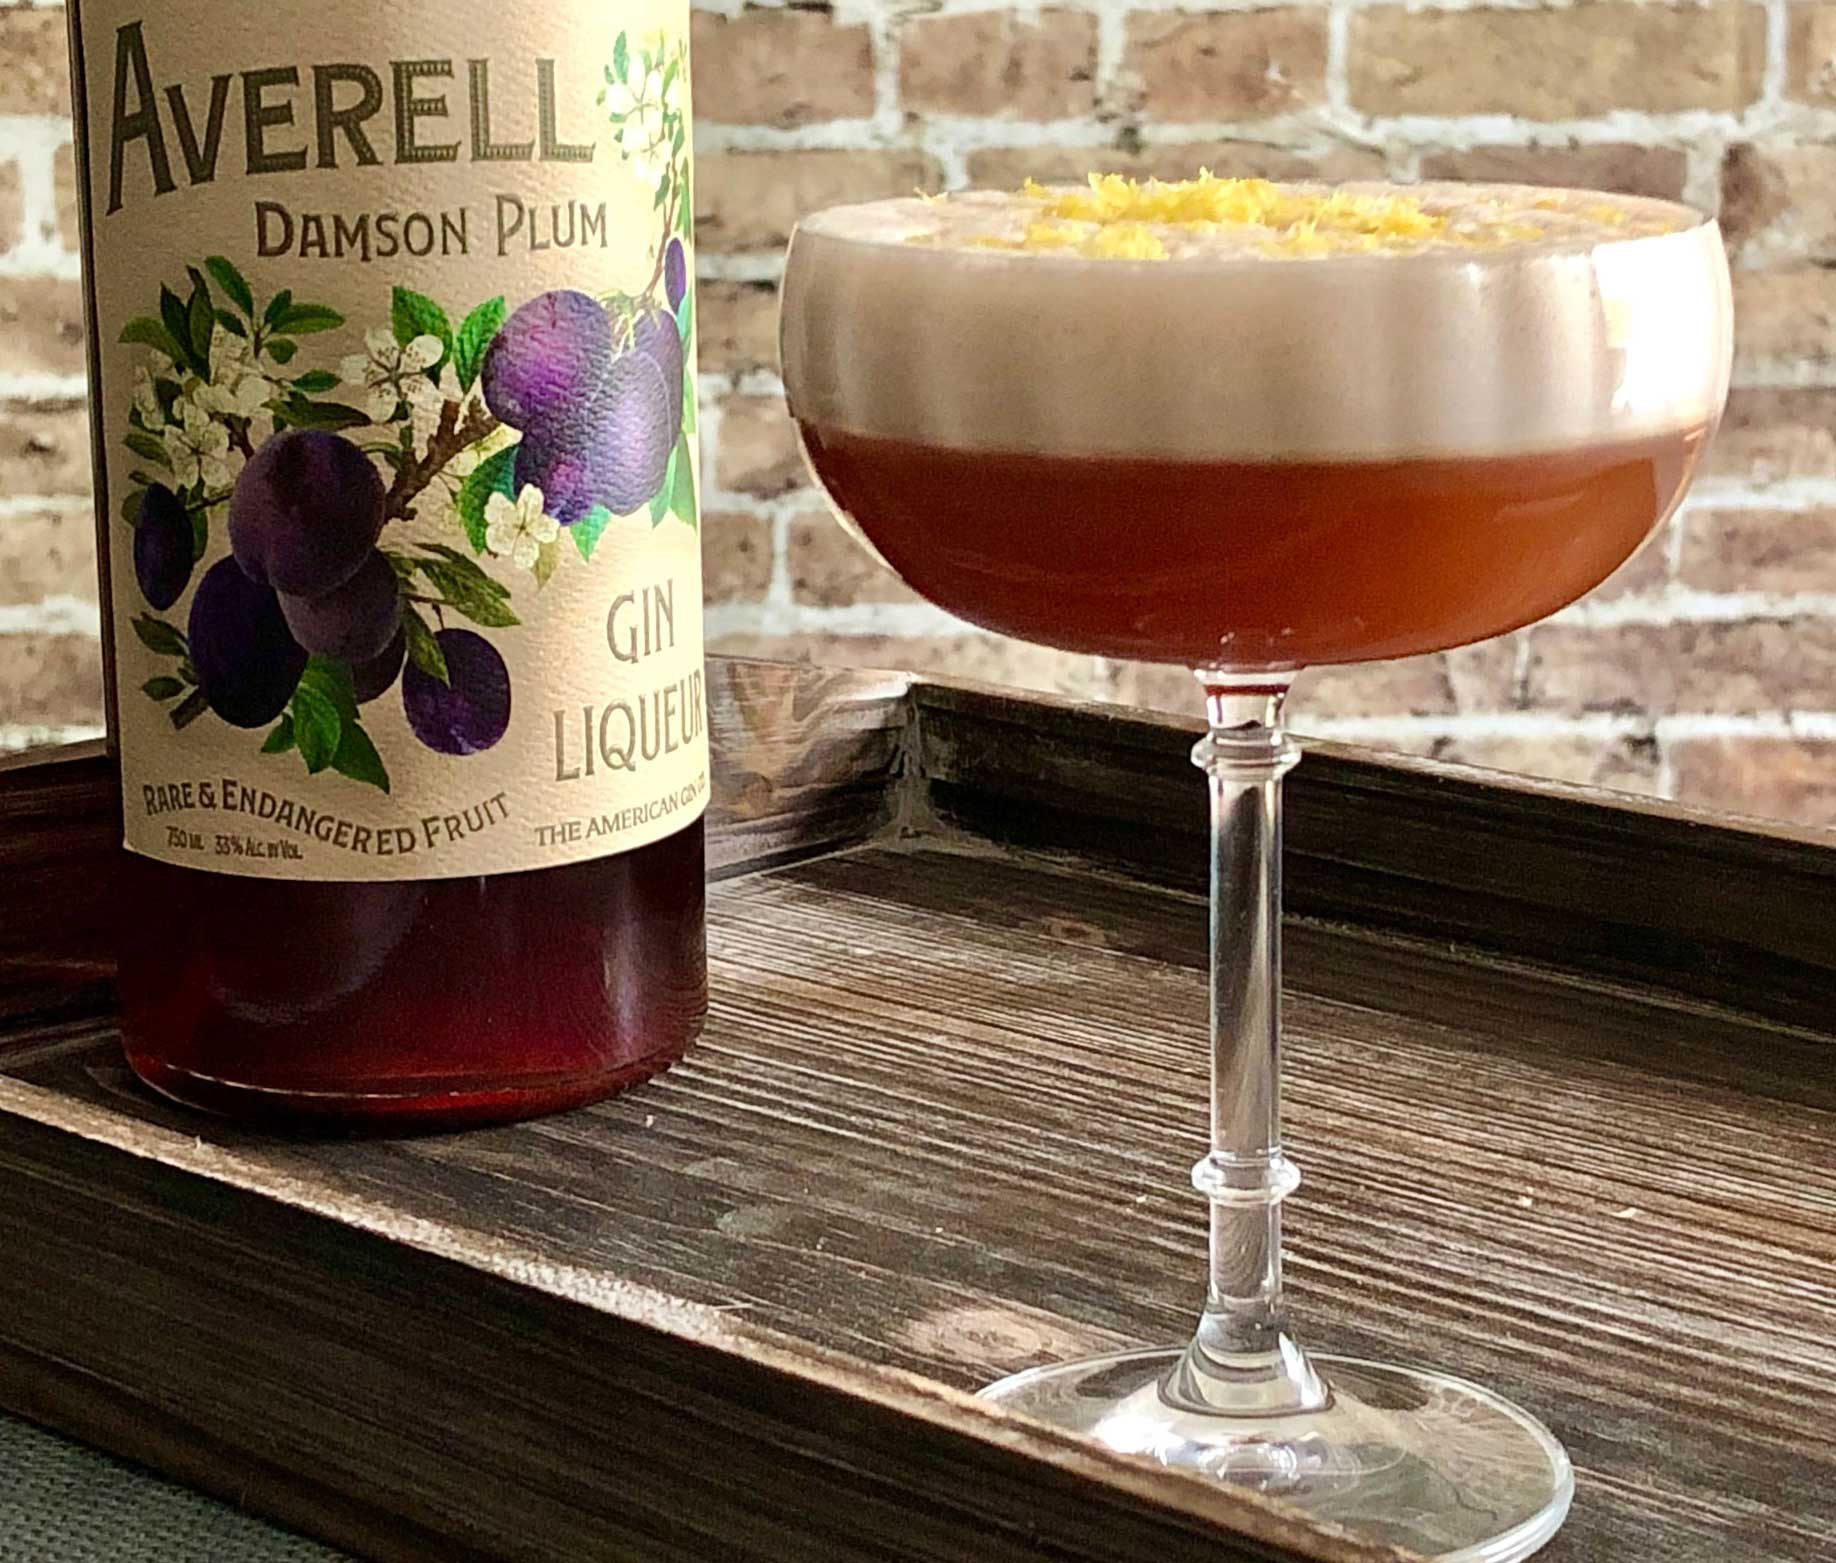 An example of the Clingstone Club, the mixed drink (cocktail) featuring Averell Damson Plum Gin Liqueur, egg white, simple syrup, lemon juice, and Nux Alpina Walnut Liqueur; photo by Lee Edwards